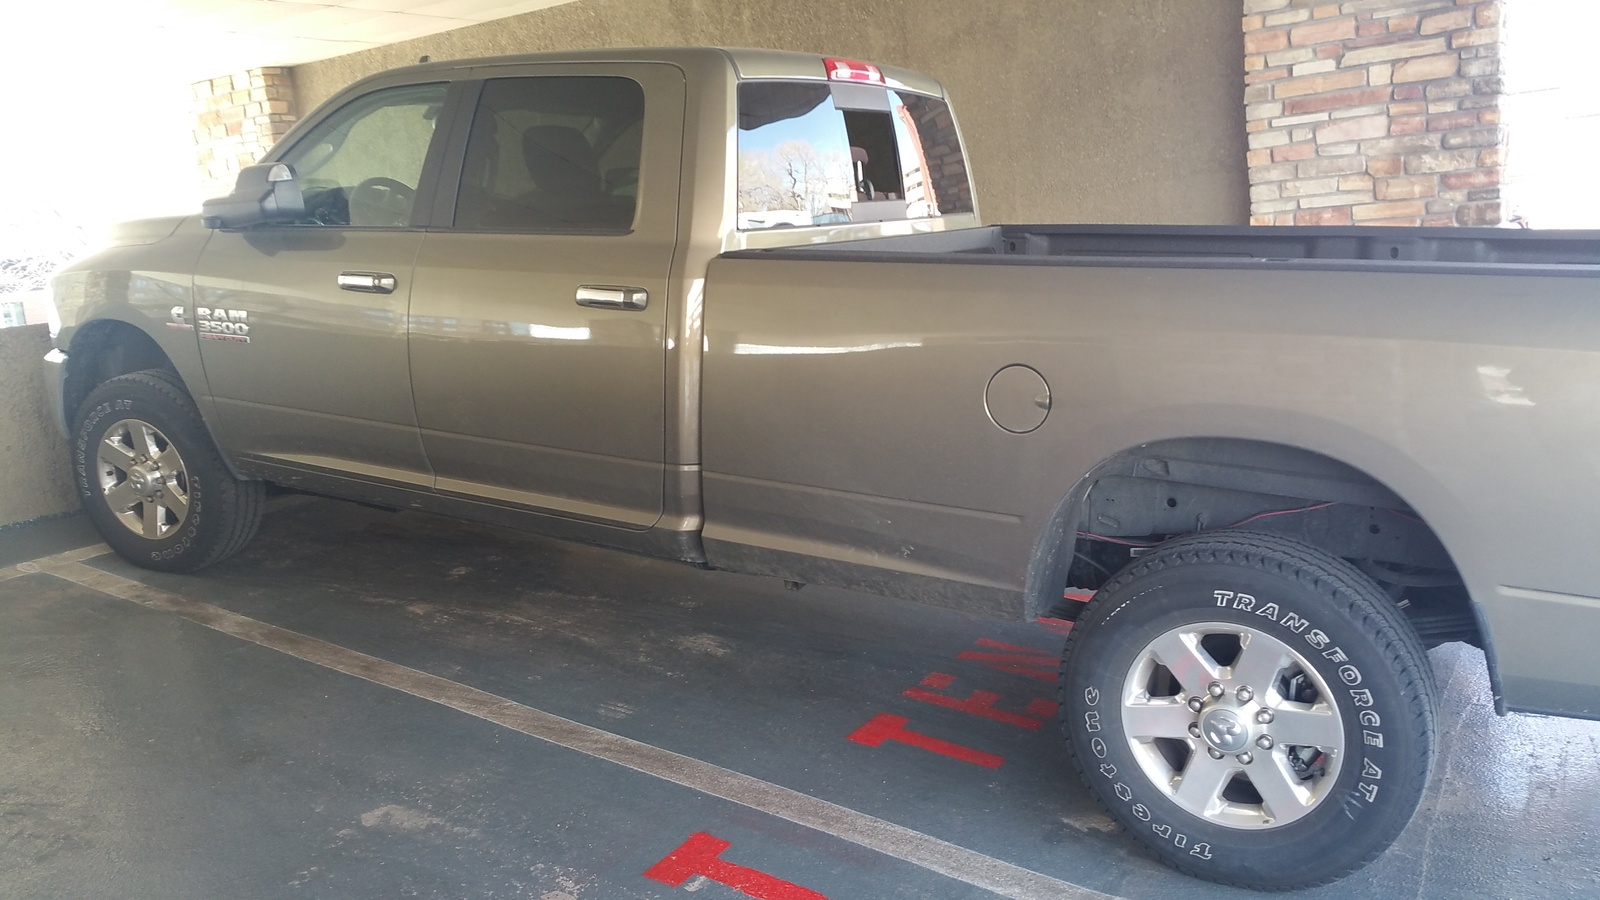 2015 / 2016 Ram 3500 for Sale in your area - CarGurus